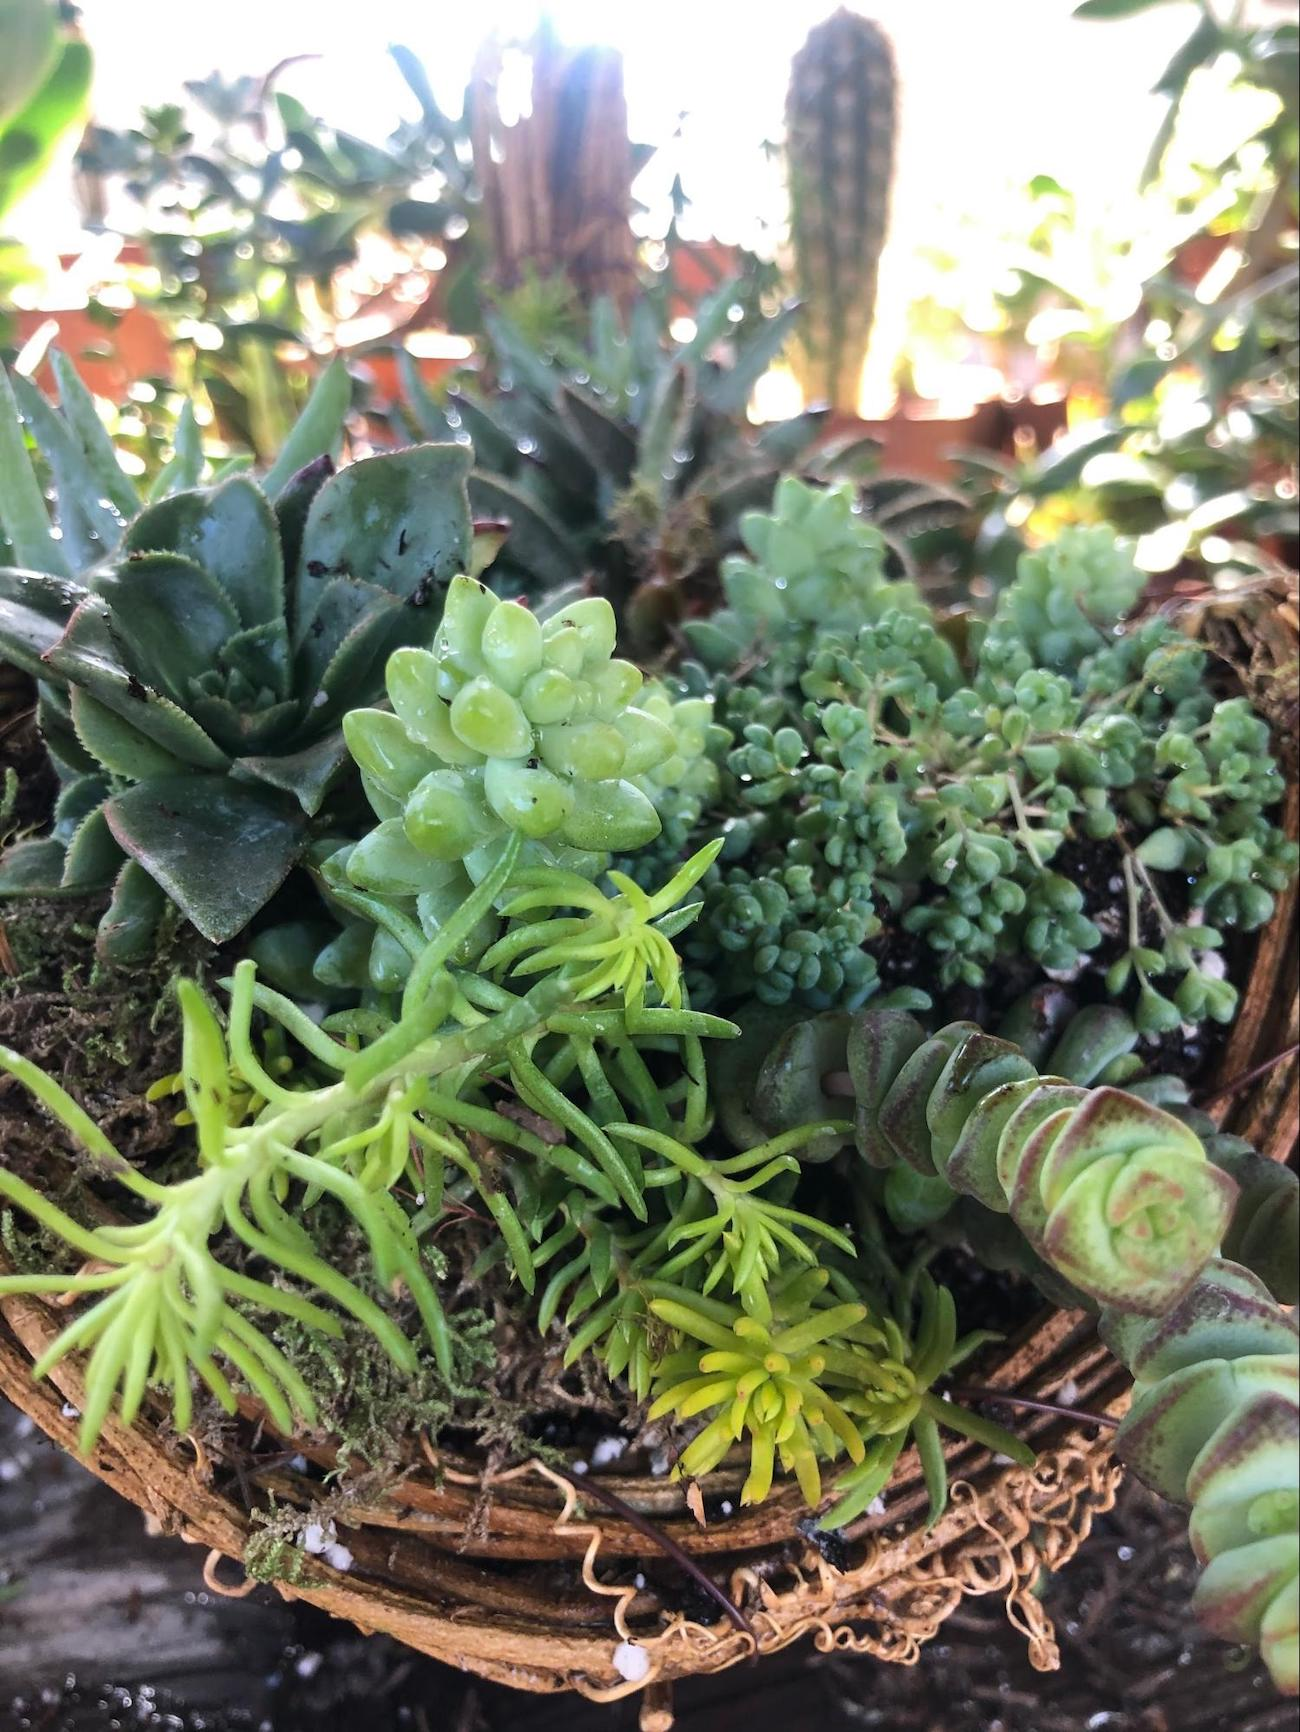 Cover bare parts of cornucopia with more succulents or moss